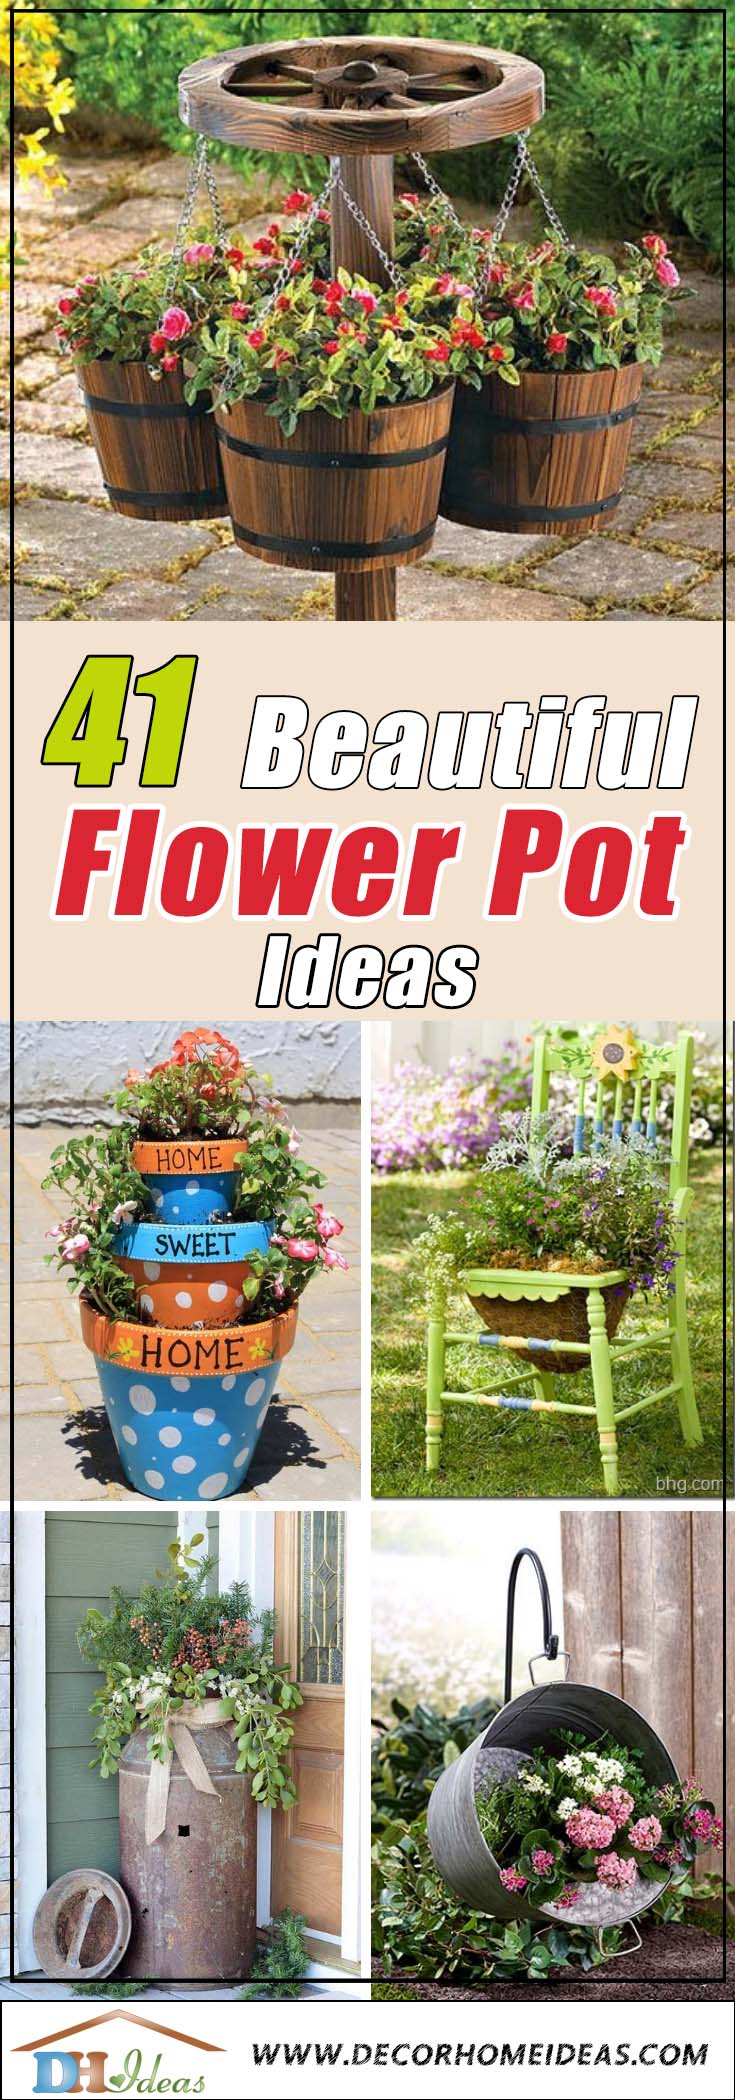 41 Beautiful Flower Pot Ideas | Best flower pots and planters ideas and arrangements. #flowerpot #flowerplanter #garden #flowers #pots #plants #ideas #backyard #yard #decorhomeideas